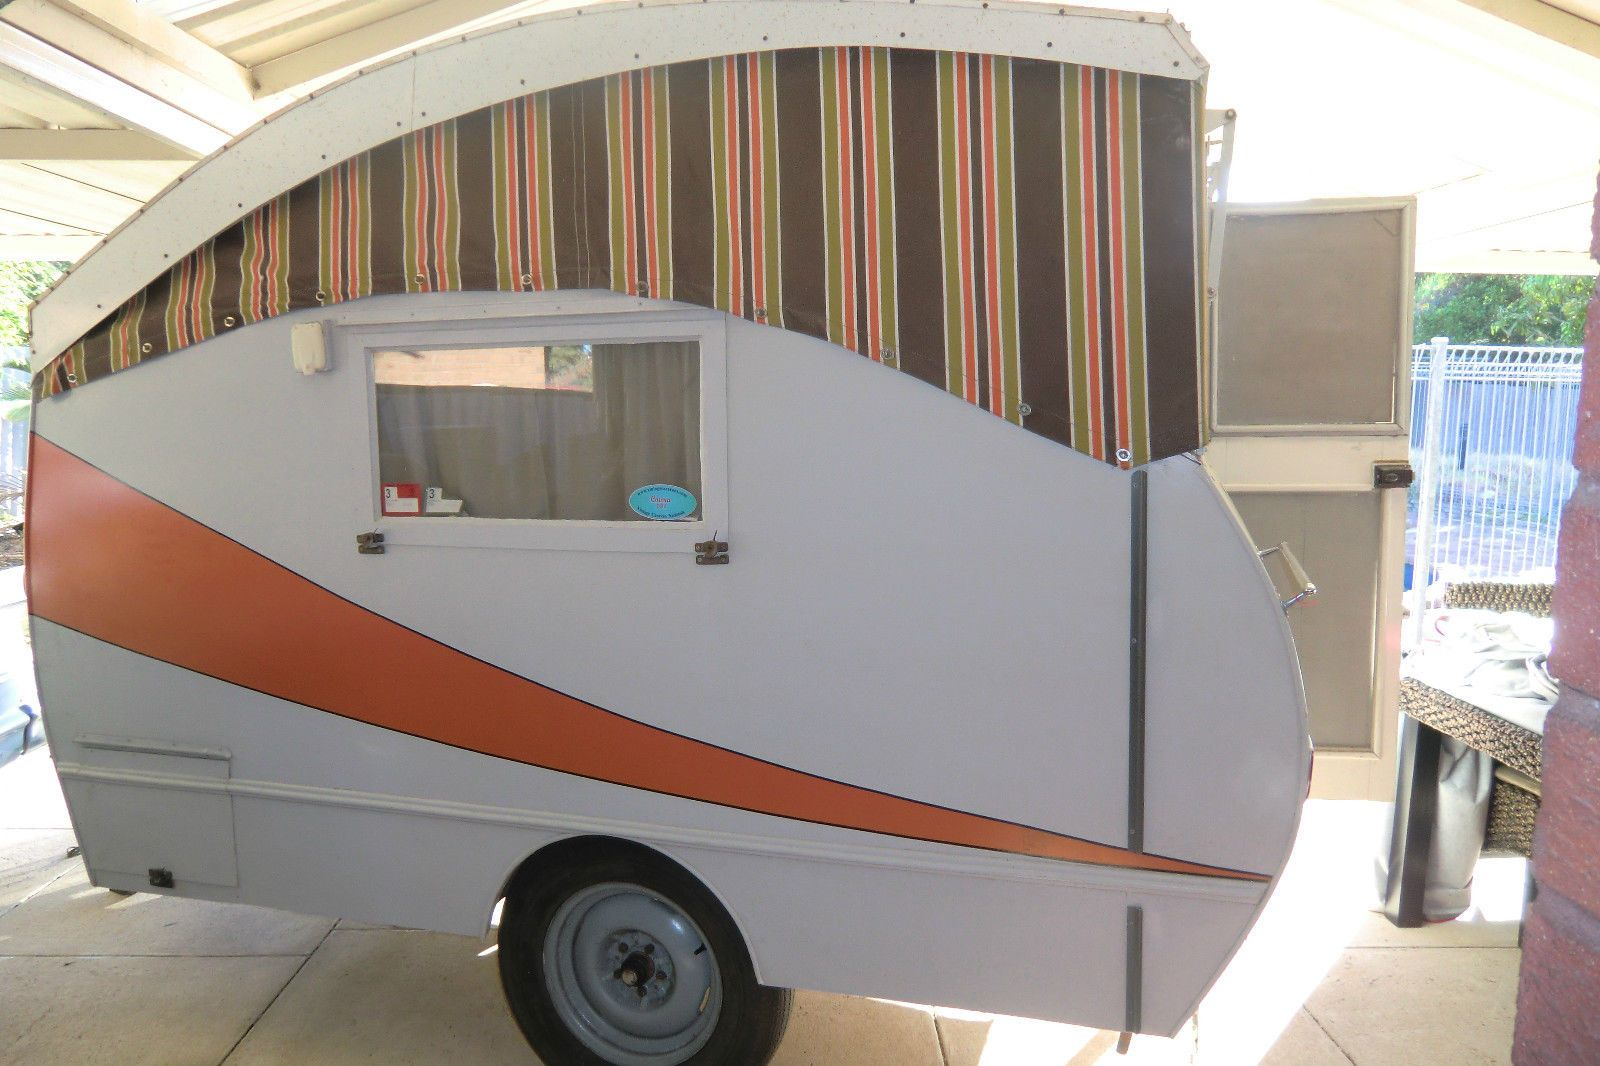 Unusual 1950s Poptop Vintage Caravan For Sale On Ebay Australia